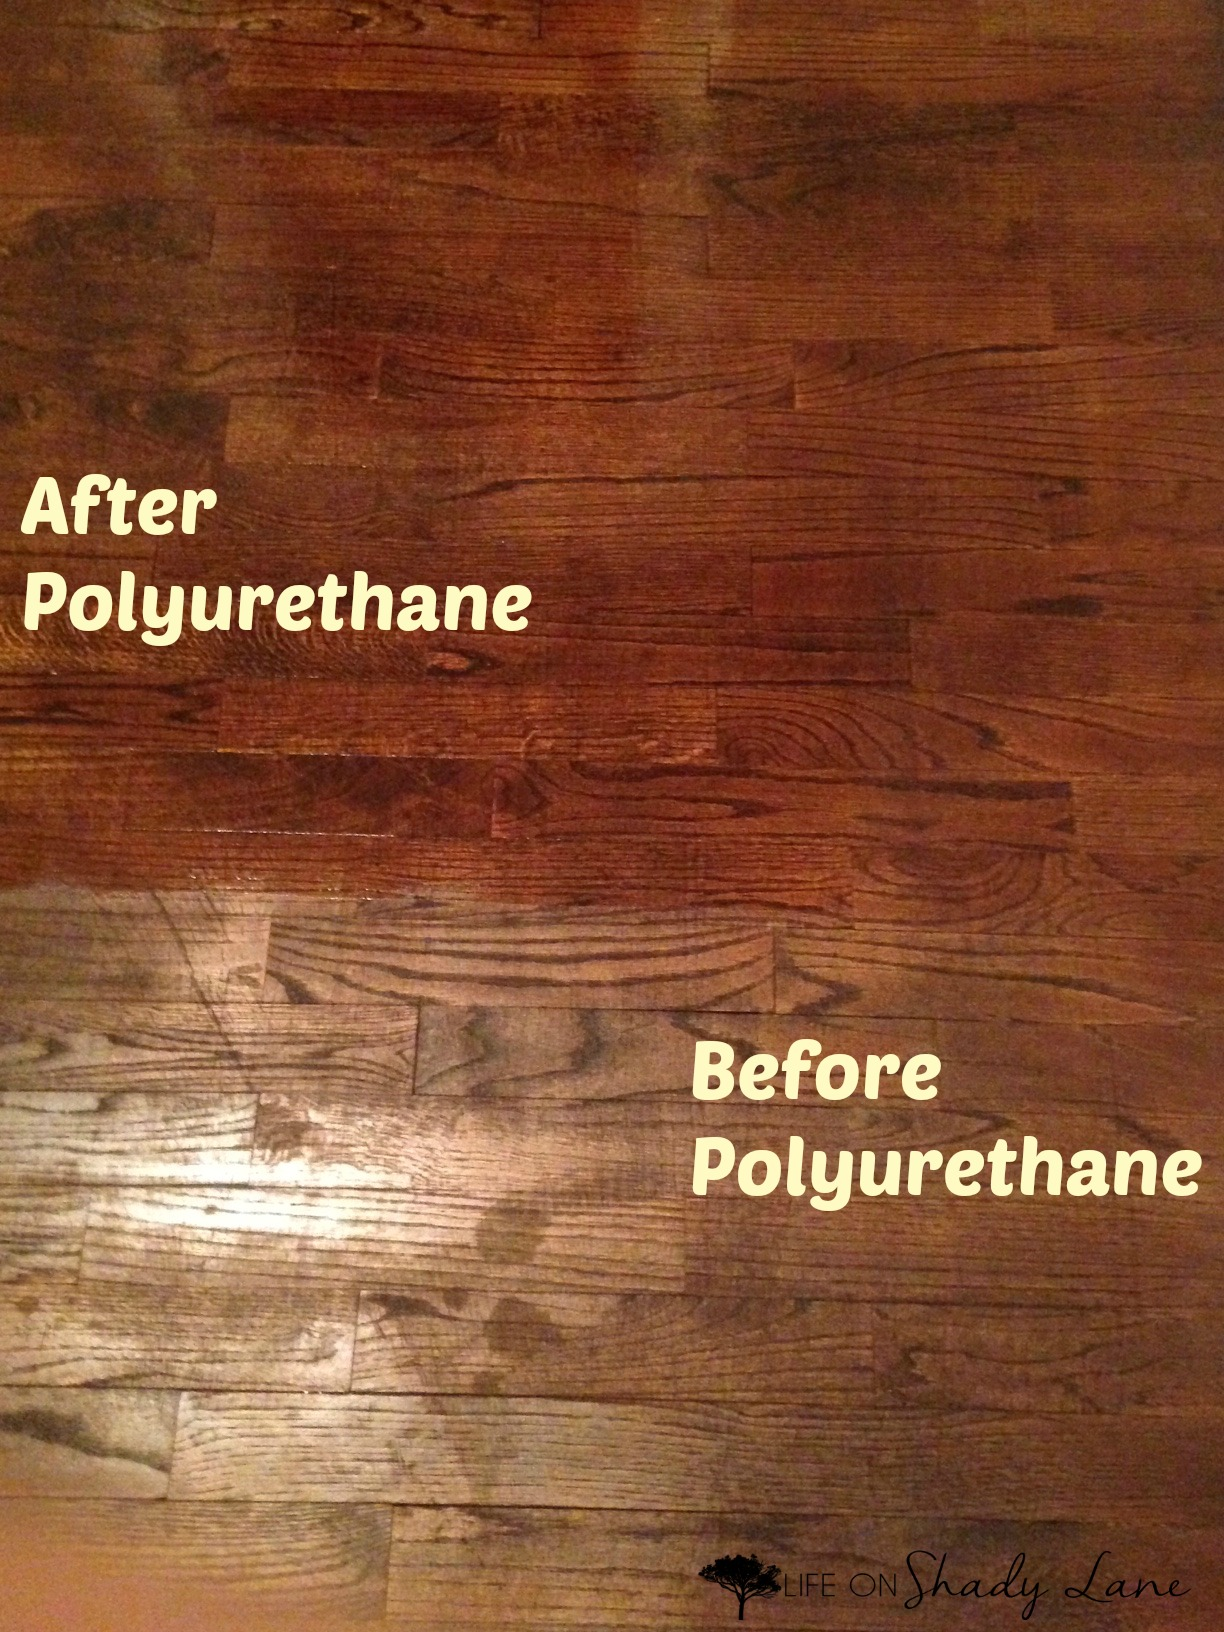 How To Refinish Hardwood Floors Part 2